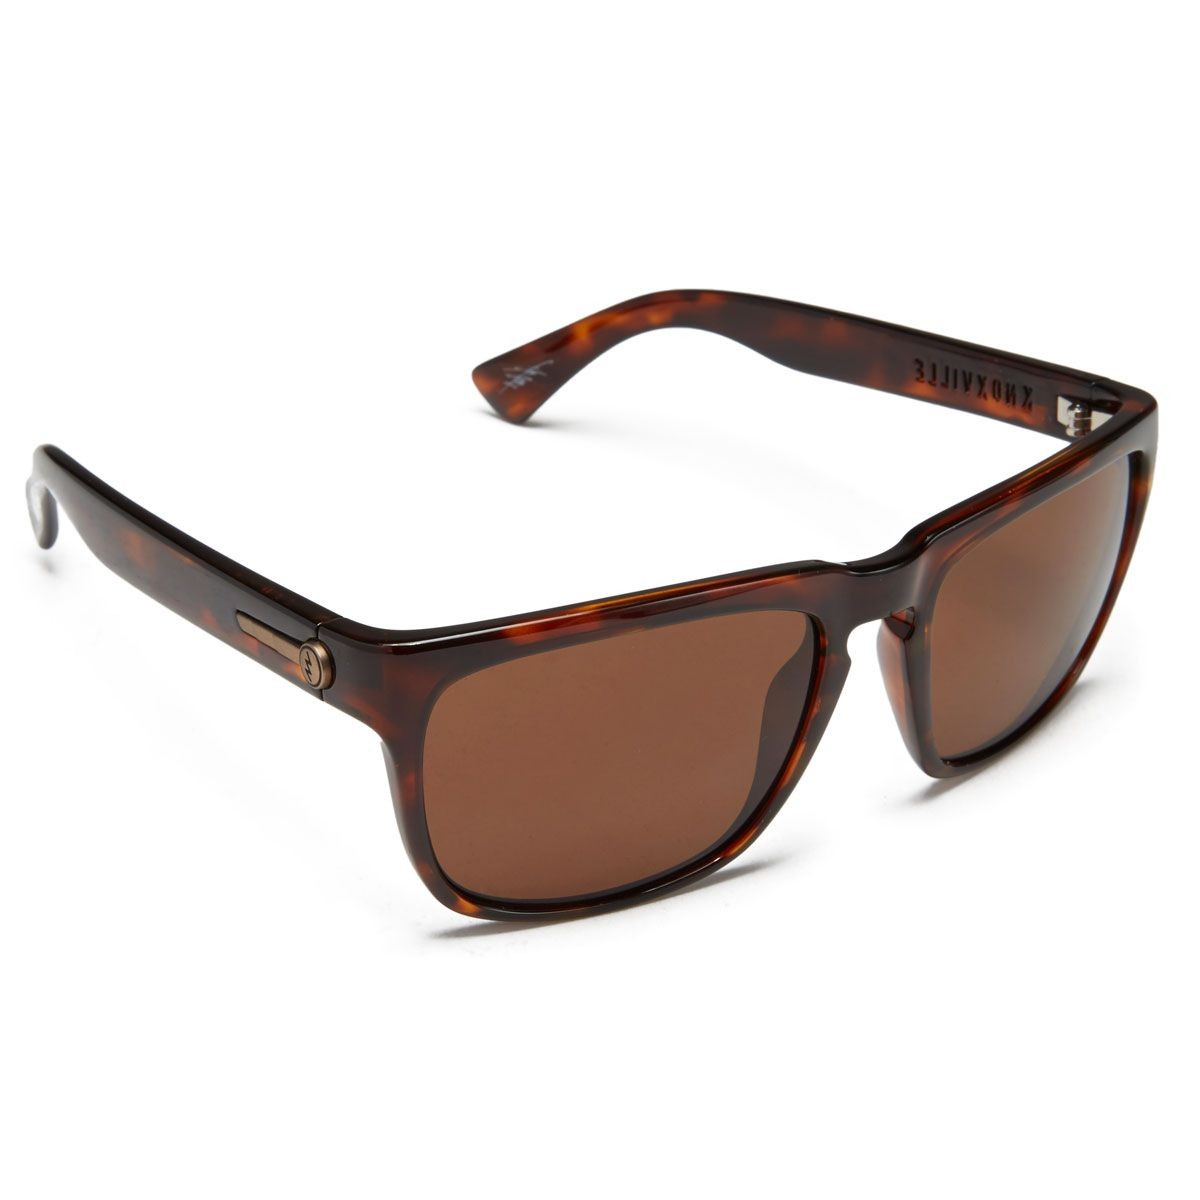 87d7d516f17 Electric Knoxville Sunglasses - Tortoise Shell with Melanin Bronze